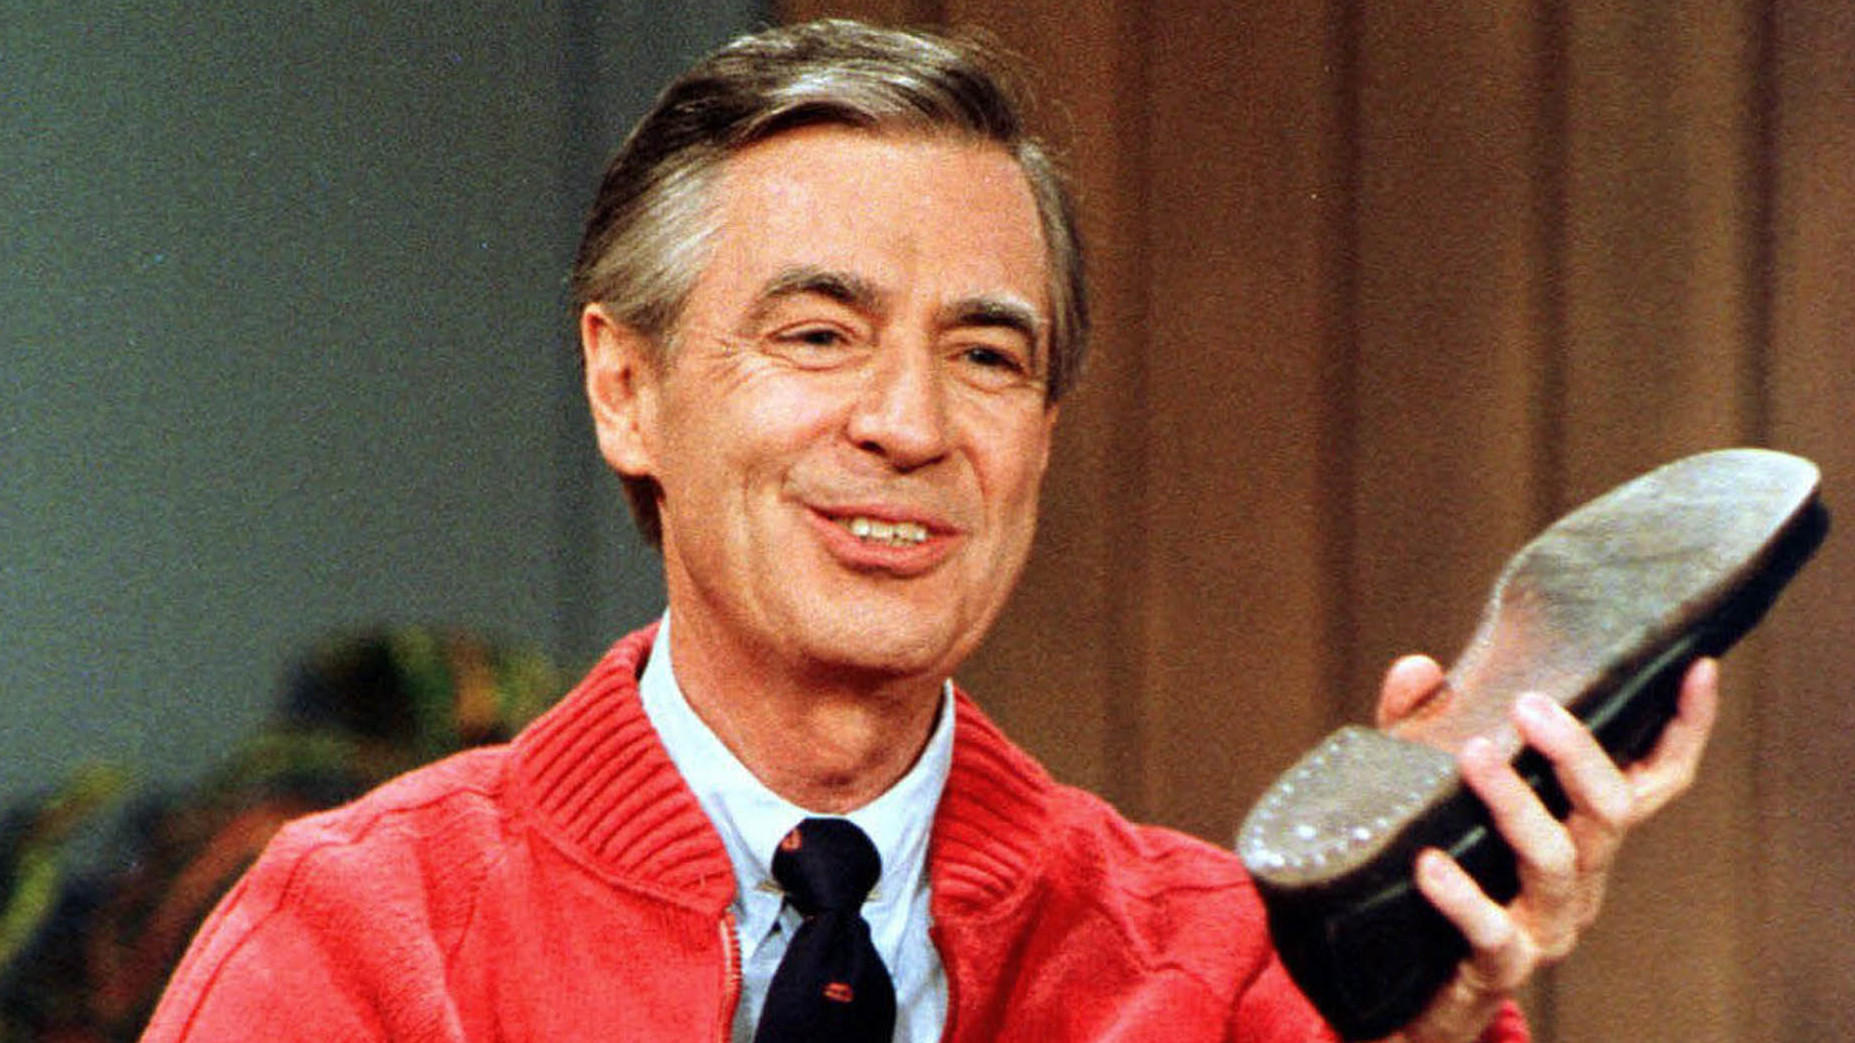 It S A Beautiful 50th Birthday For Mister Rogers Neighborhood Kera News